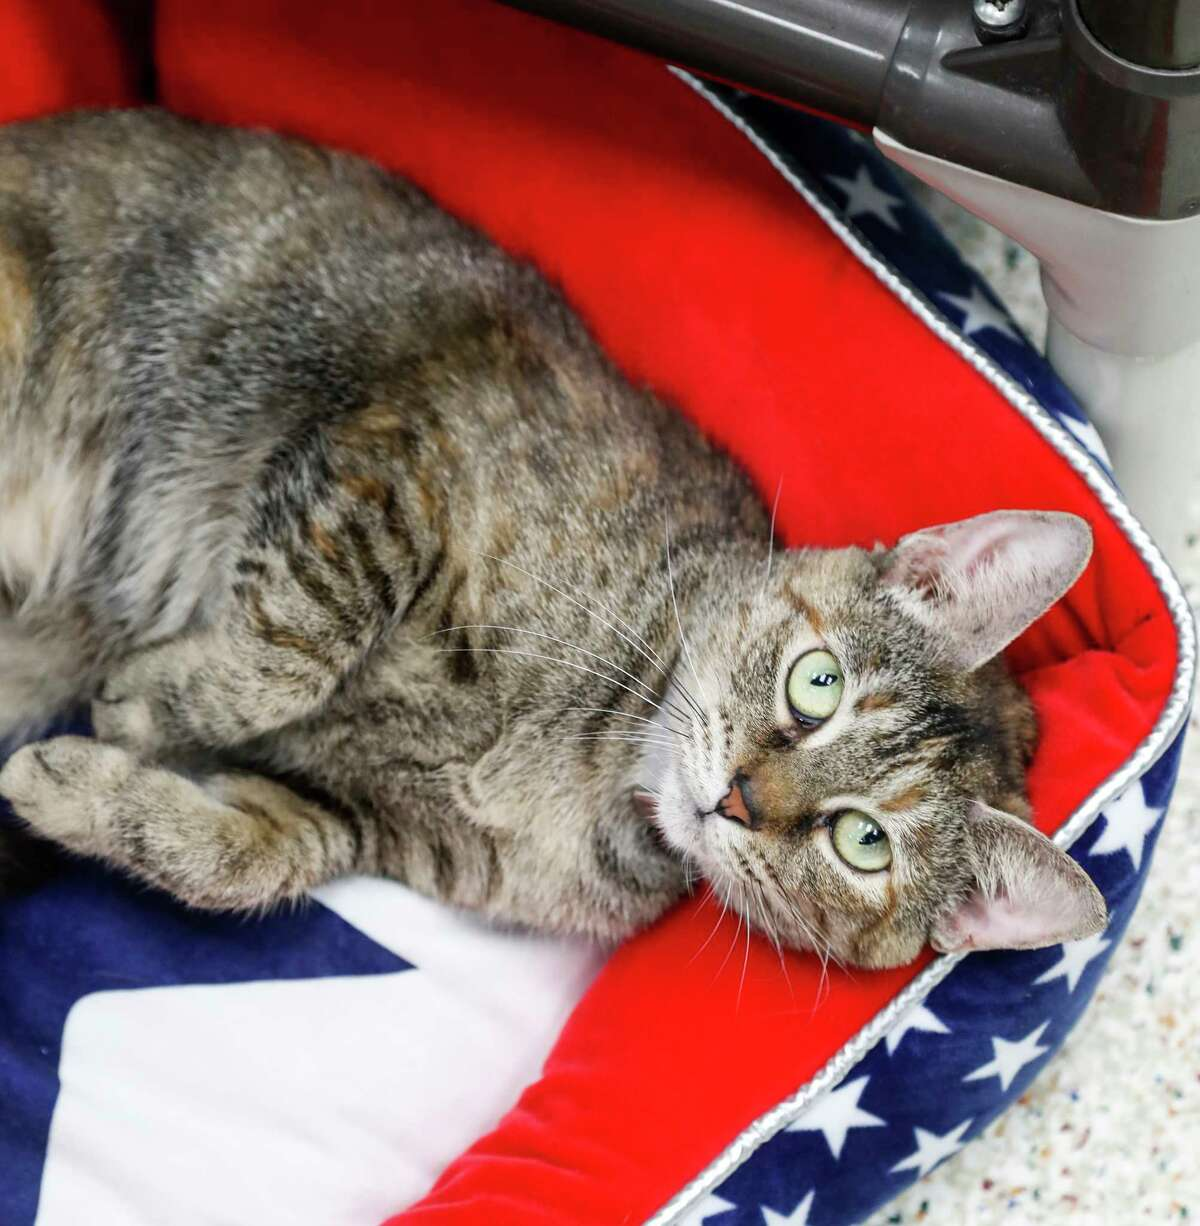 Tigger (ID: 421552242) is a 2-year-old, female, Torbie Domestic Short Hair cat available for adoption from the Houston Humane Society. Photographed, Tuesday, Sept. 10, 2019, in Houston. Tigger is a love bug, who was surrendered by her owner for having